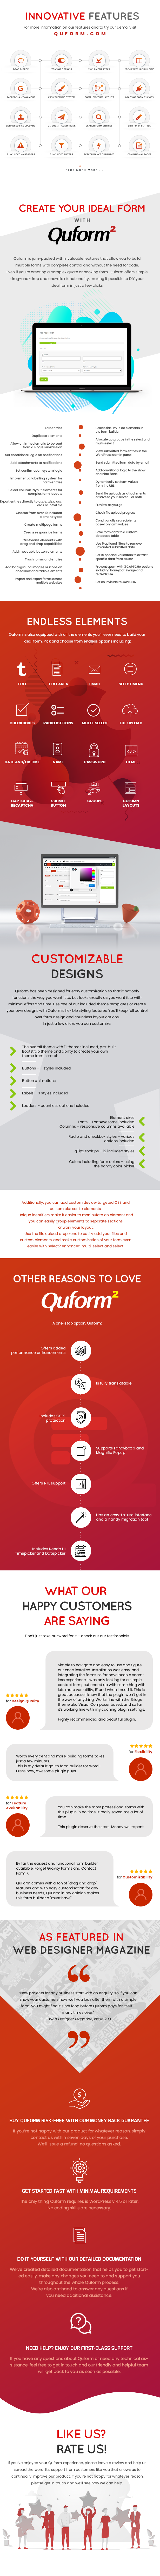 Quform 2 features list